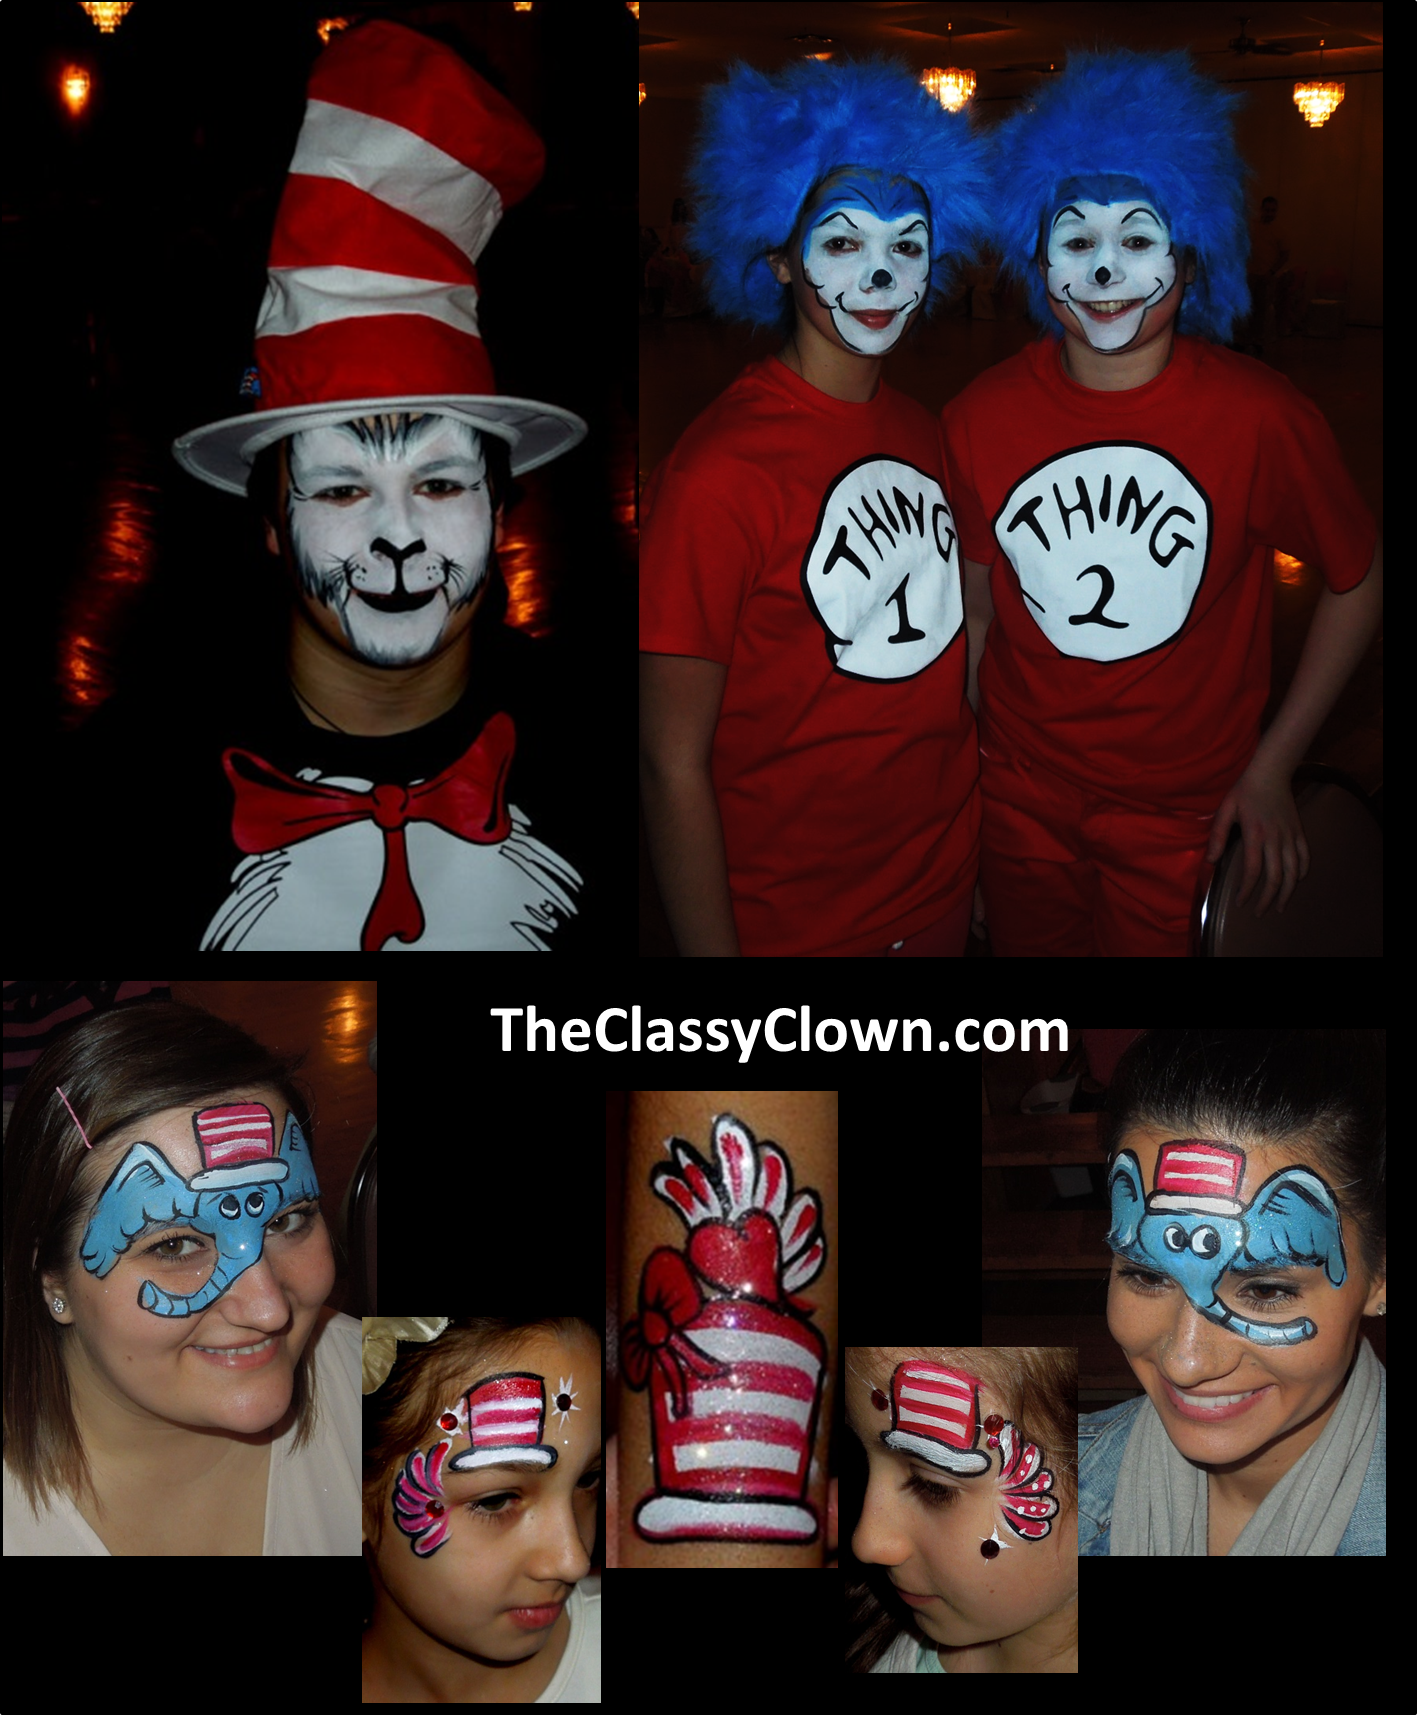 Clown Schminken Suess Dr Seuss Cat In The Hat Thing 1 Thing 2 Face Painting Party Fun